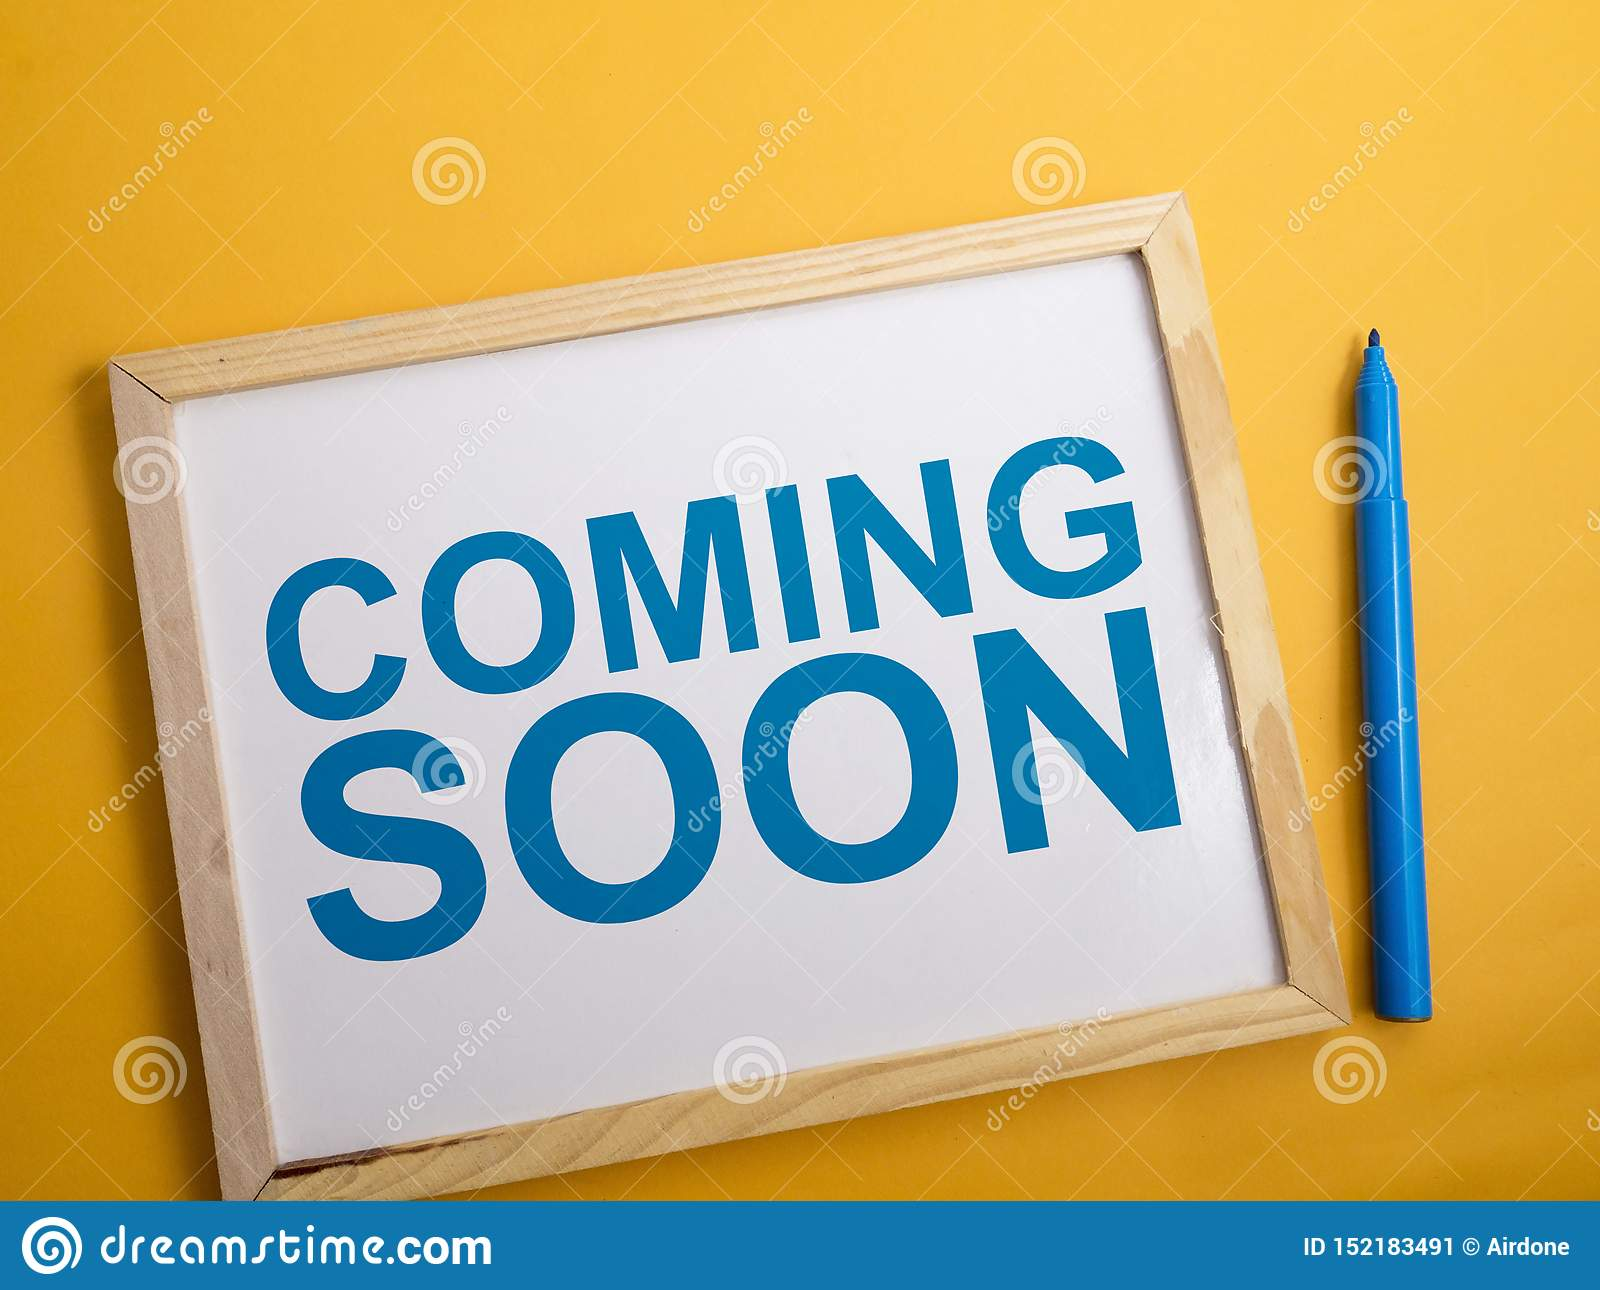 Coming Soon Words Typography Concept Stock Image Image Of Word Advertising 152183491